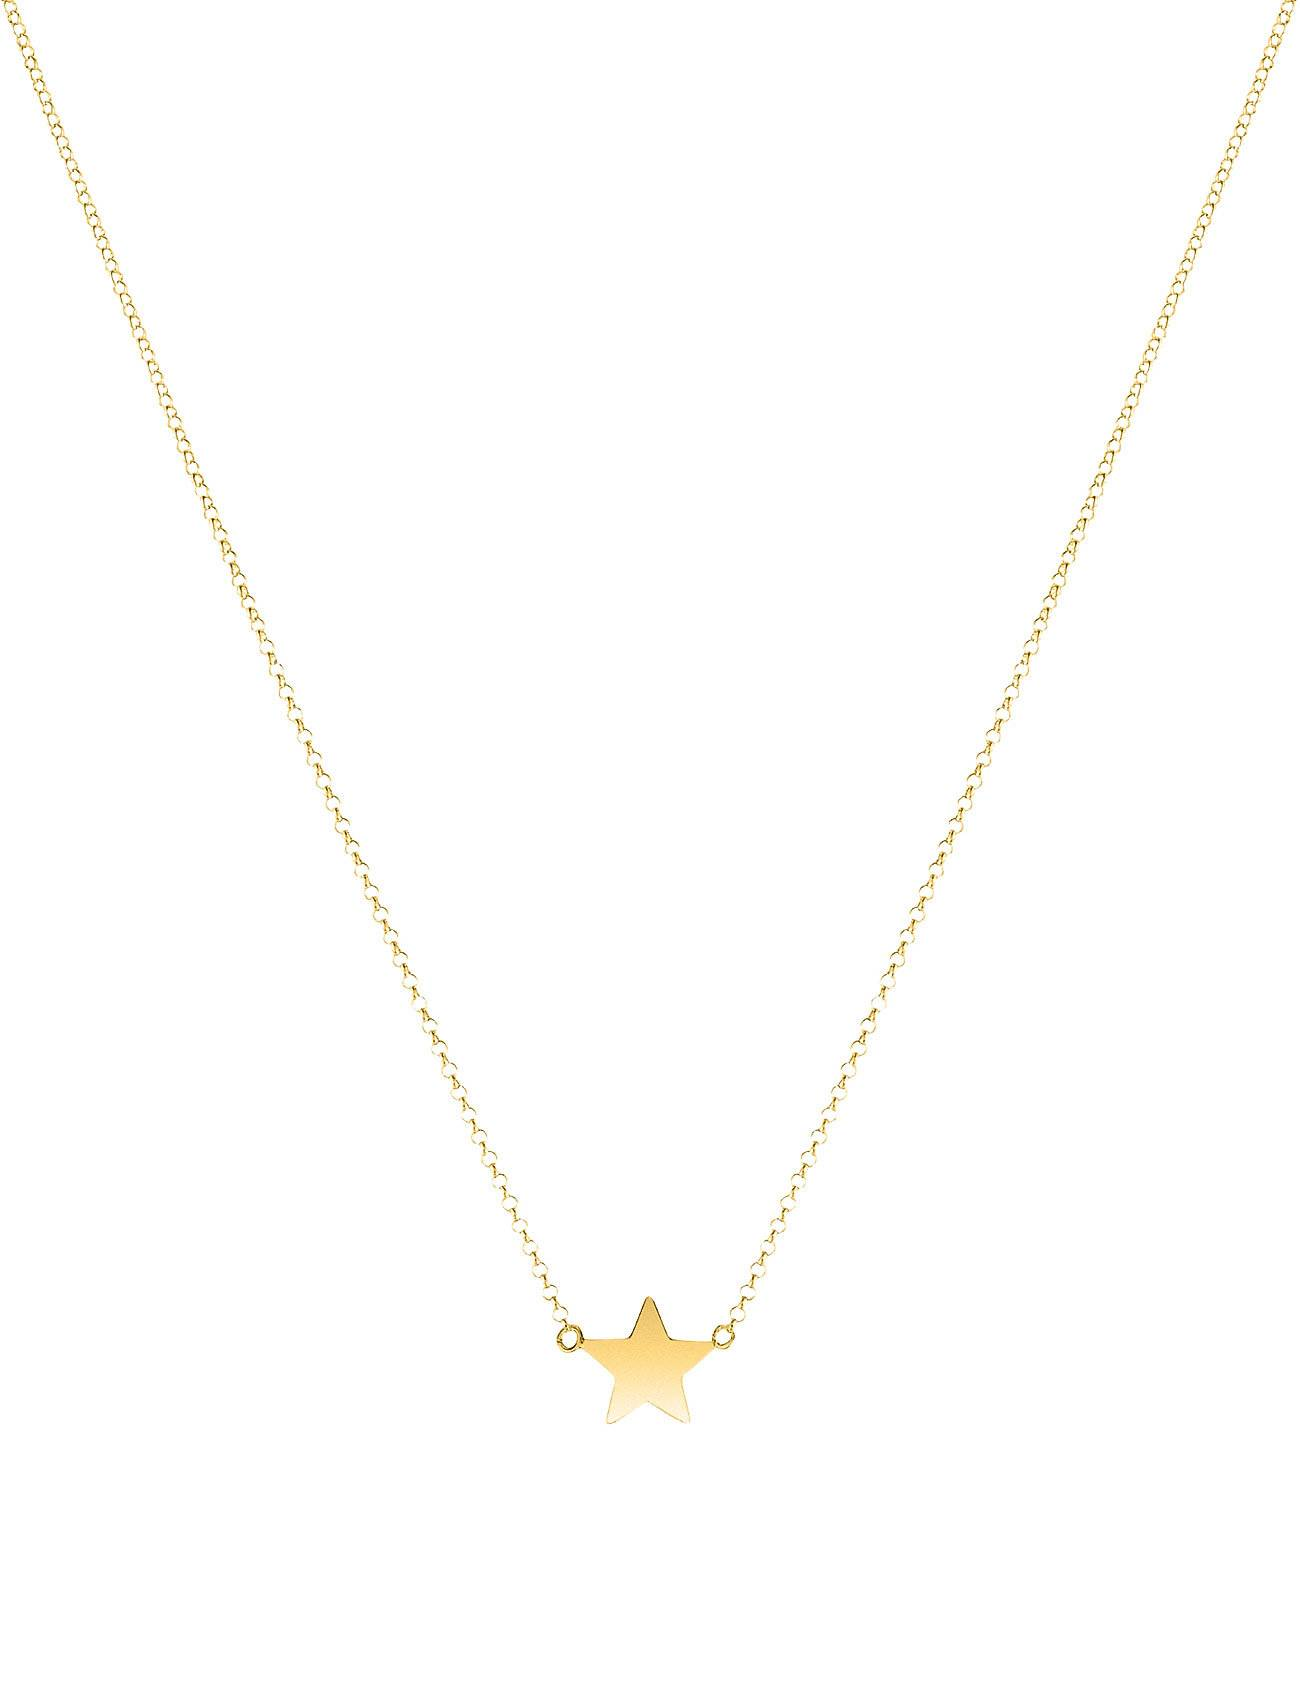 SOPHIE by SOPHIE Mini Star Necklace